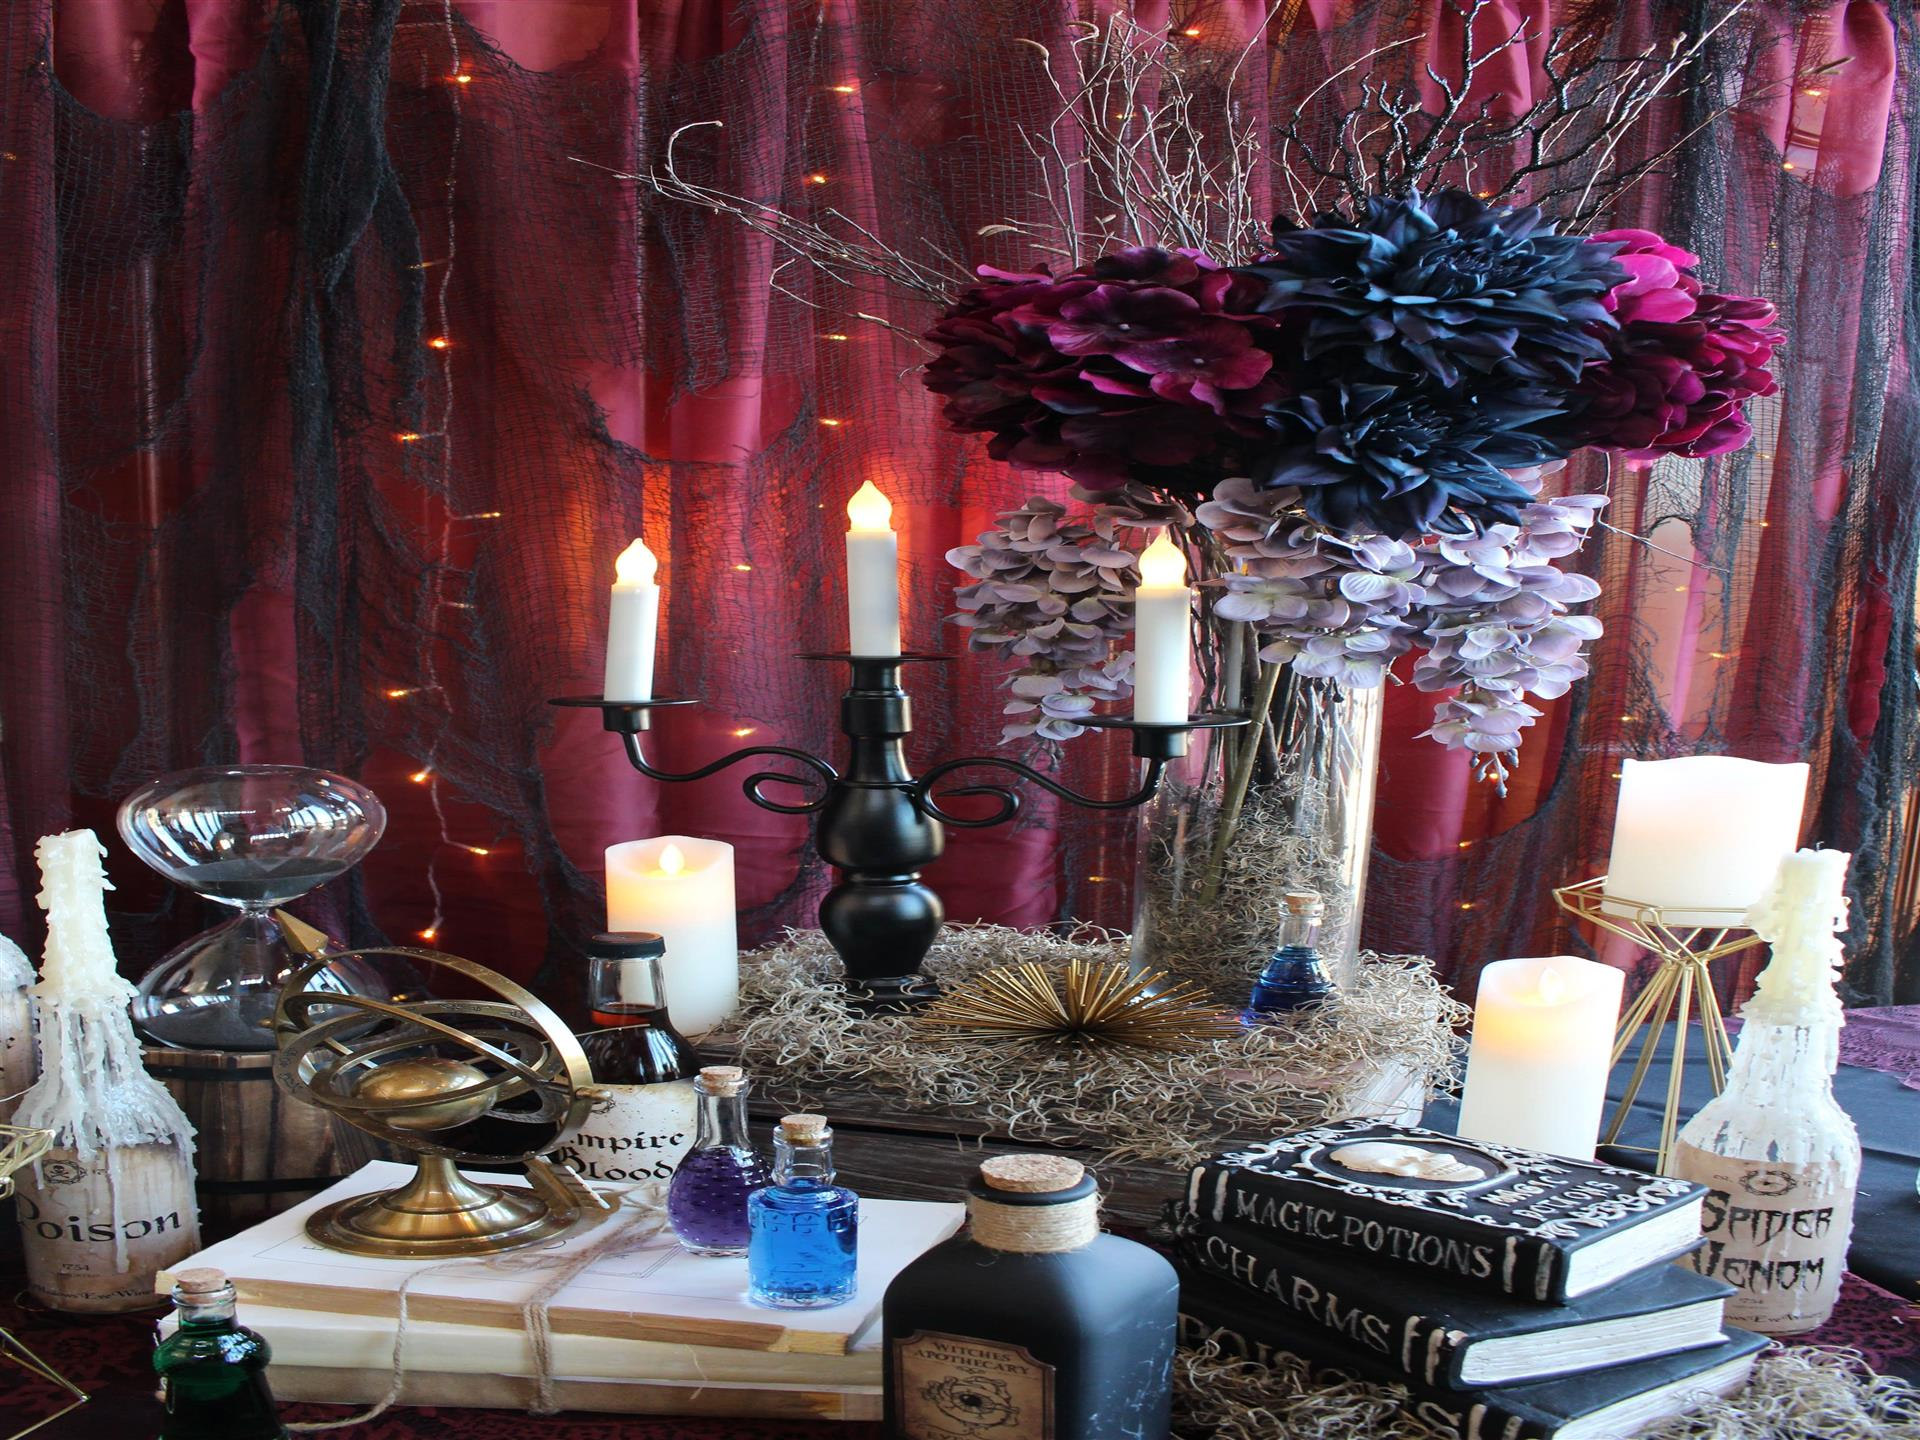 Party Room candle display with flowers